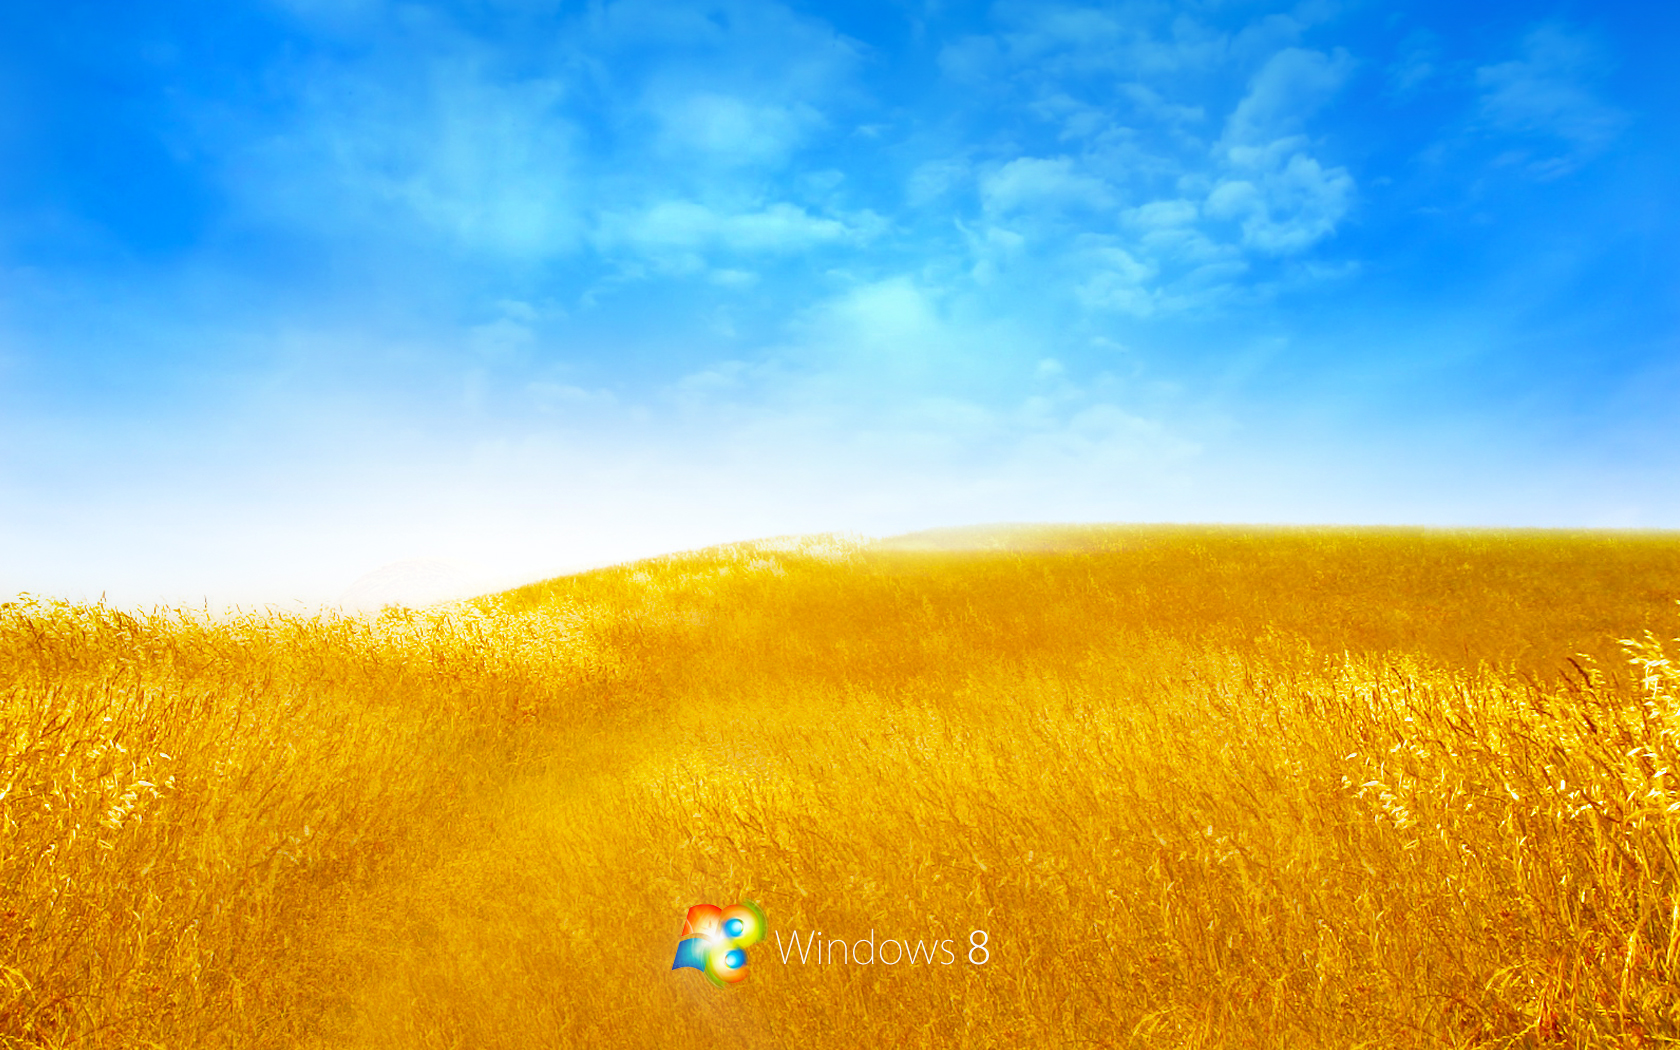 Windows 8 Bliss Stock Photos